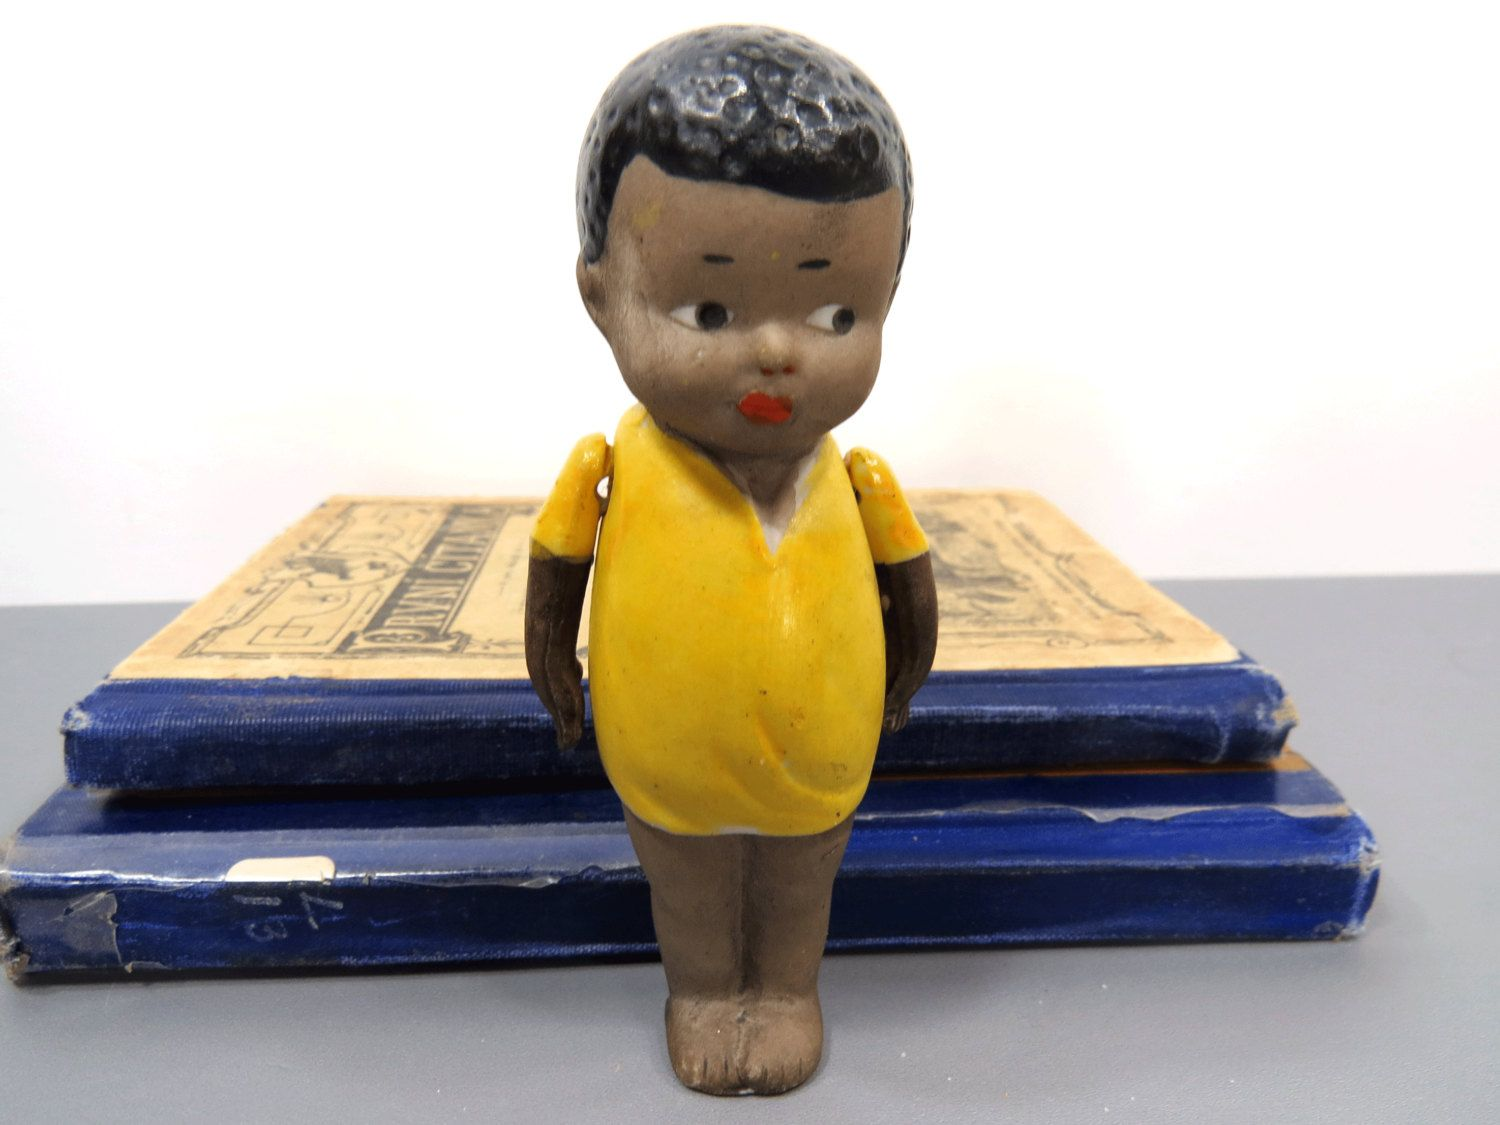 Black and yellow hair boy nippon black americana bisque boy doll  movable arms frozen legs